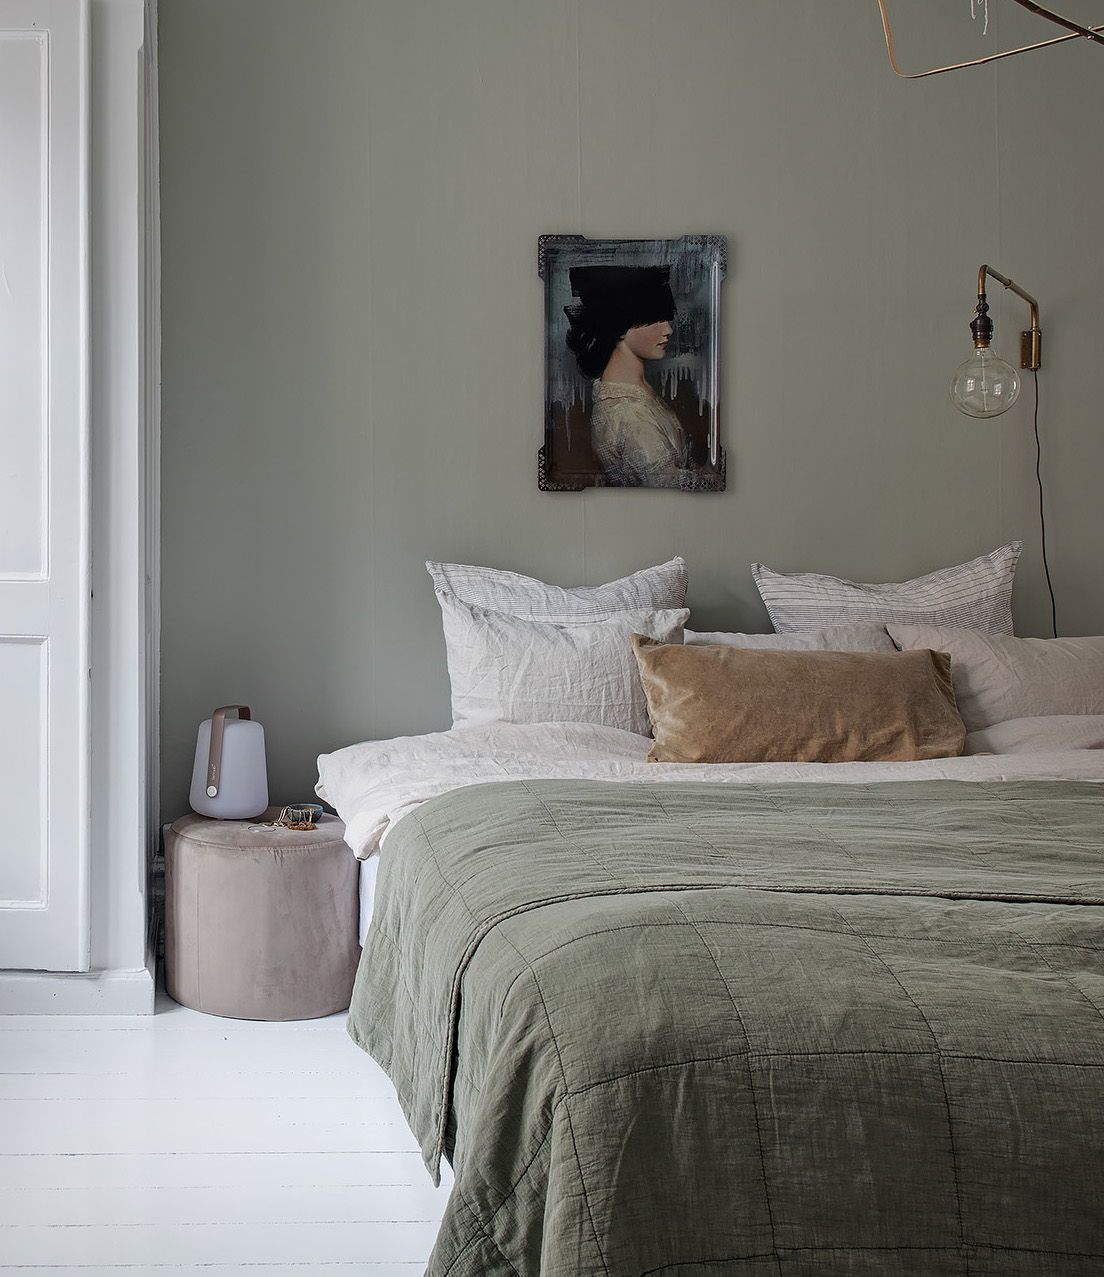 Bedroom in pale green - via Coco Lapine Design blog #style #shopping #styles #outfit #pretty #girl #girls #beauty #beautiful #me #cute #stylish #photooftheday #swag #dress #shoes #diy #design #fashion #homedecor